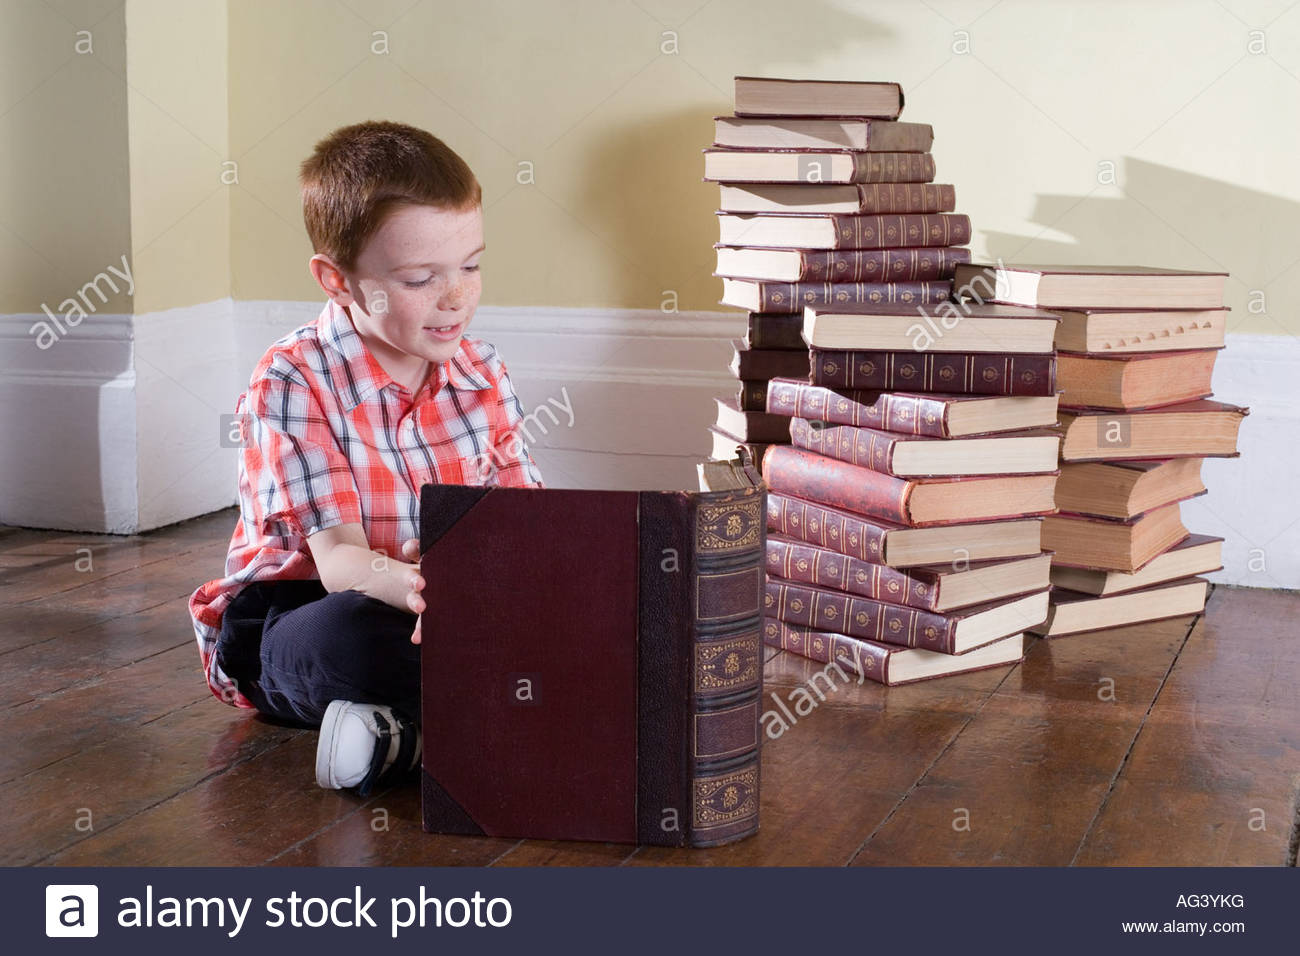 Boy reading books Photo Stock